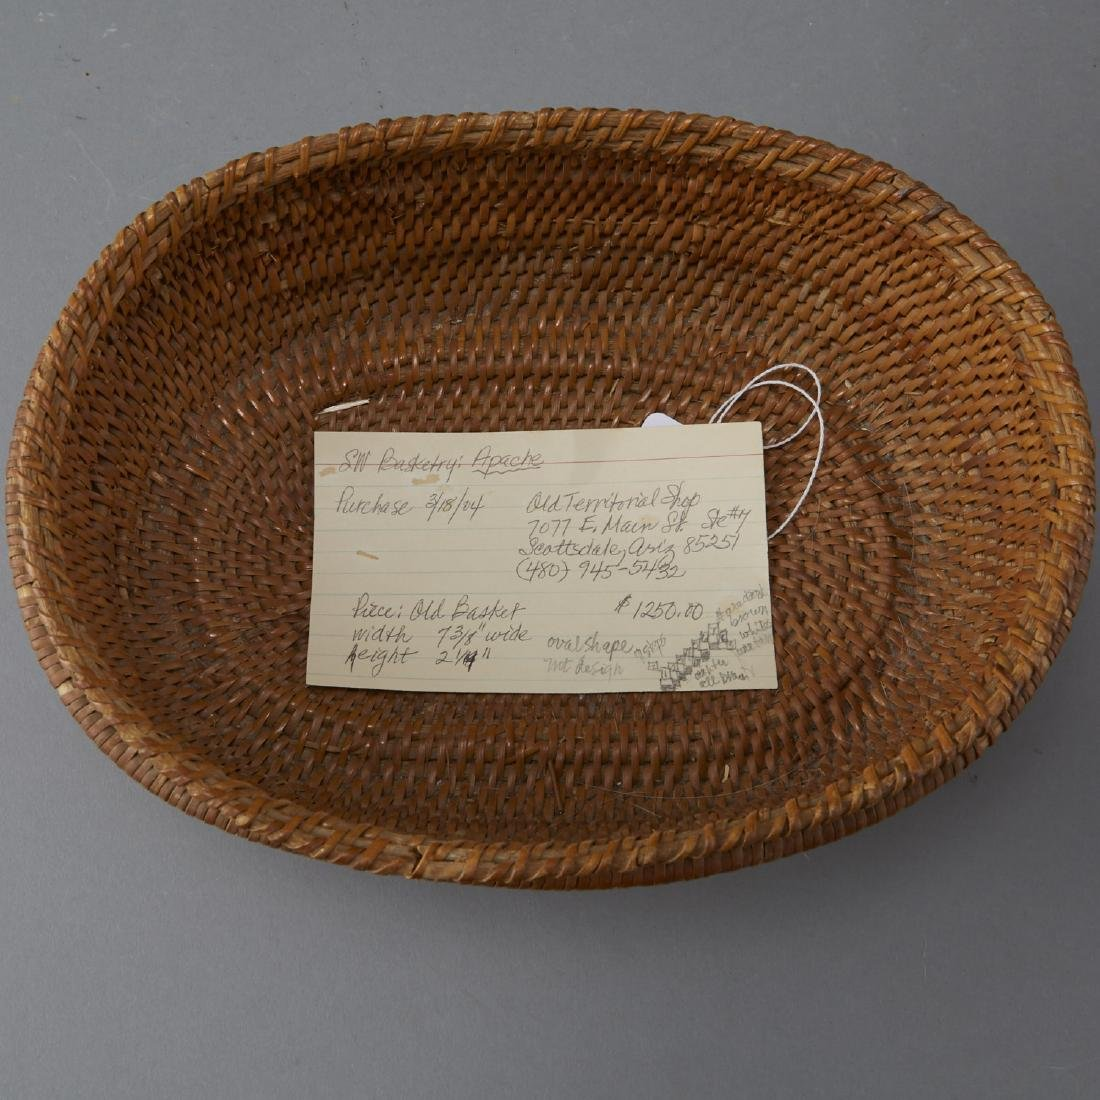 Group of 14 Native American Baskets - 7